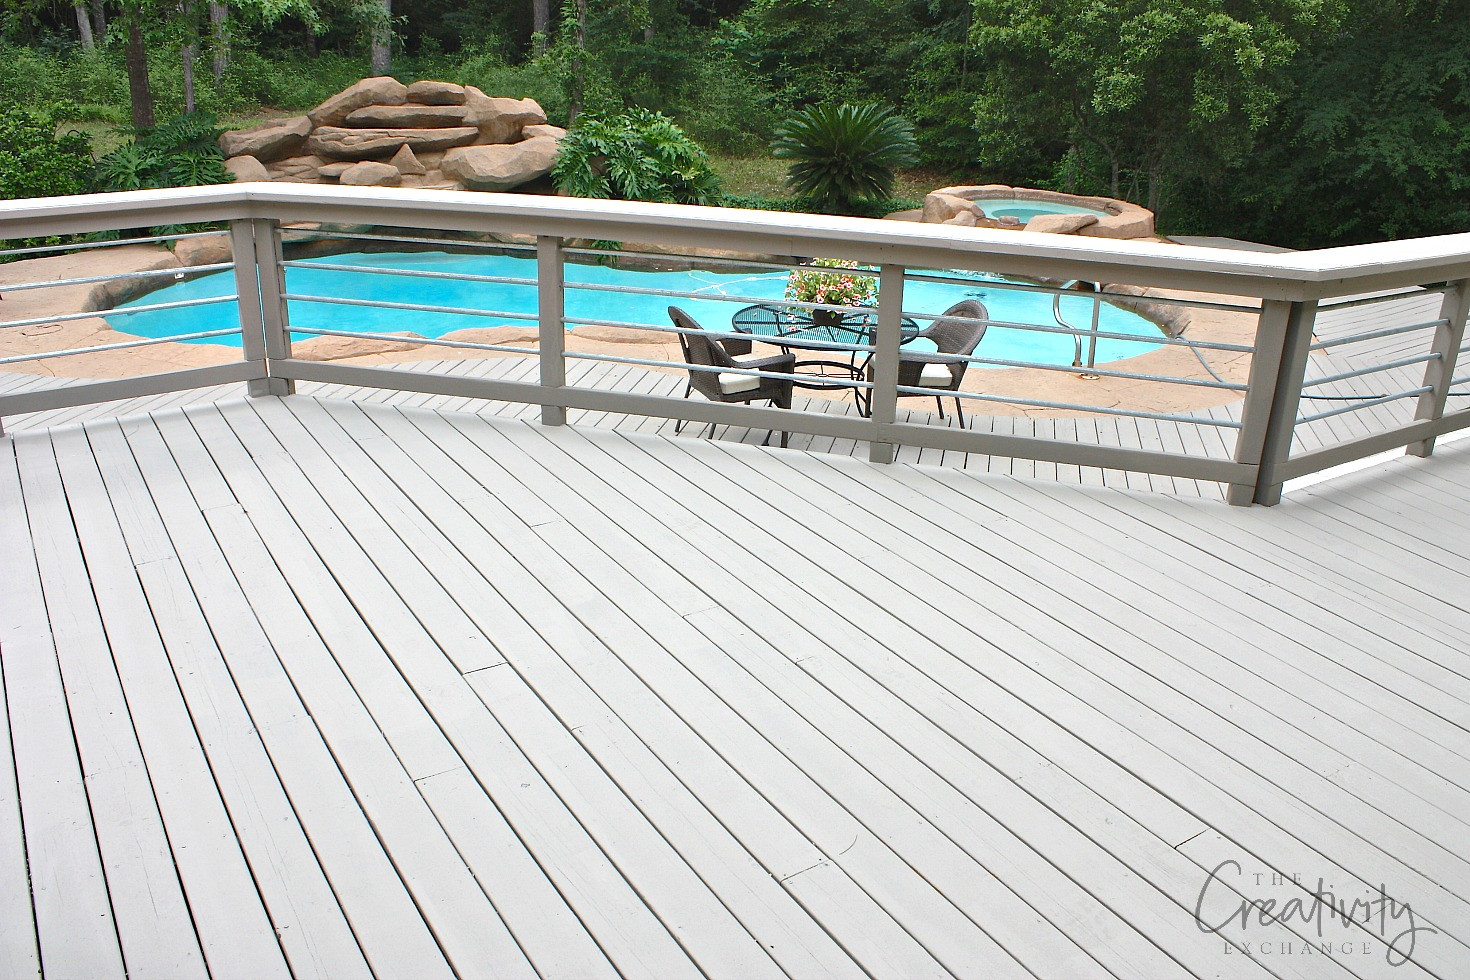 Best ideas about Best Outdoor Paint . Save or Pin Best Paints to Use on Decks and Exterior Wood Features Now.